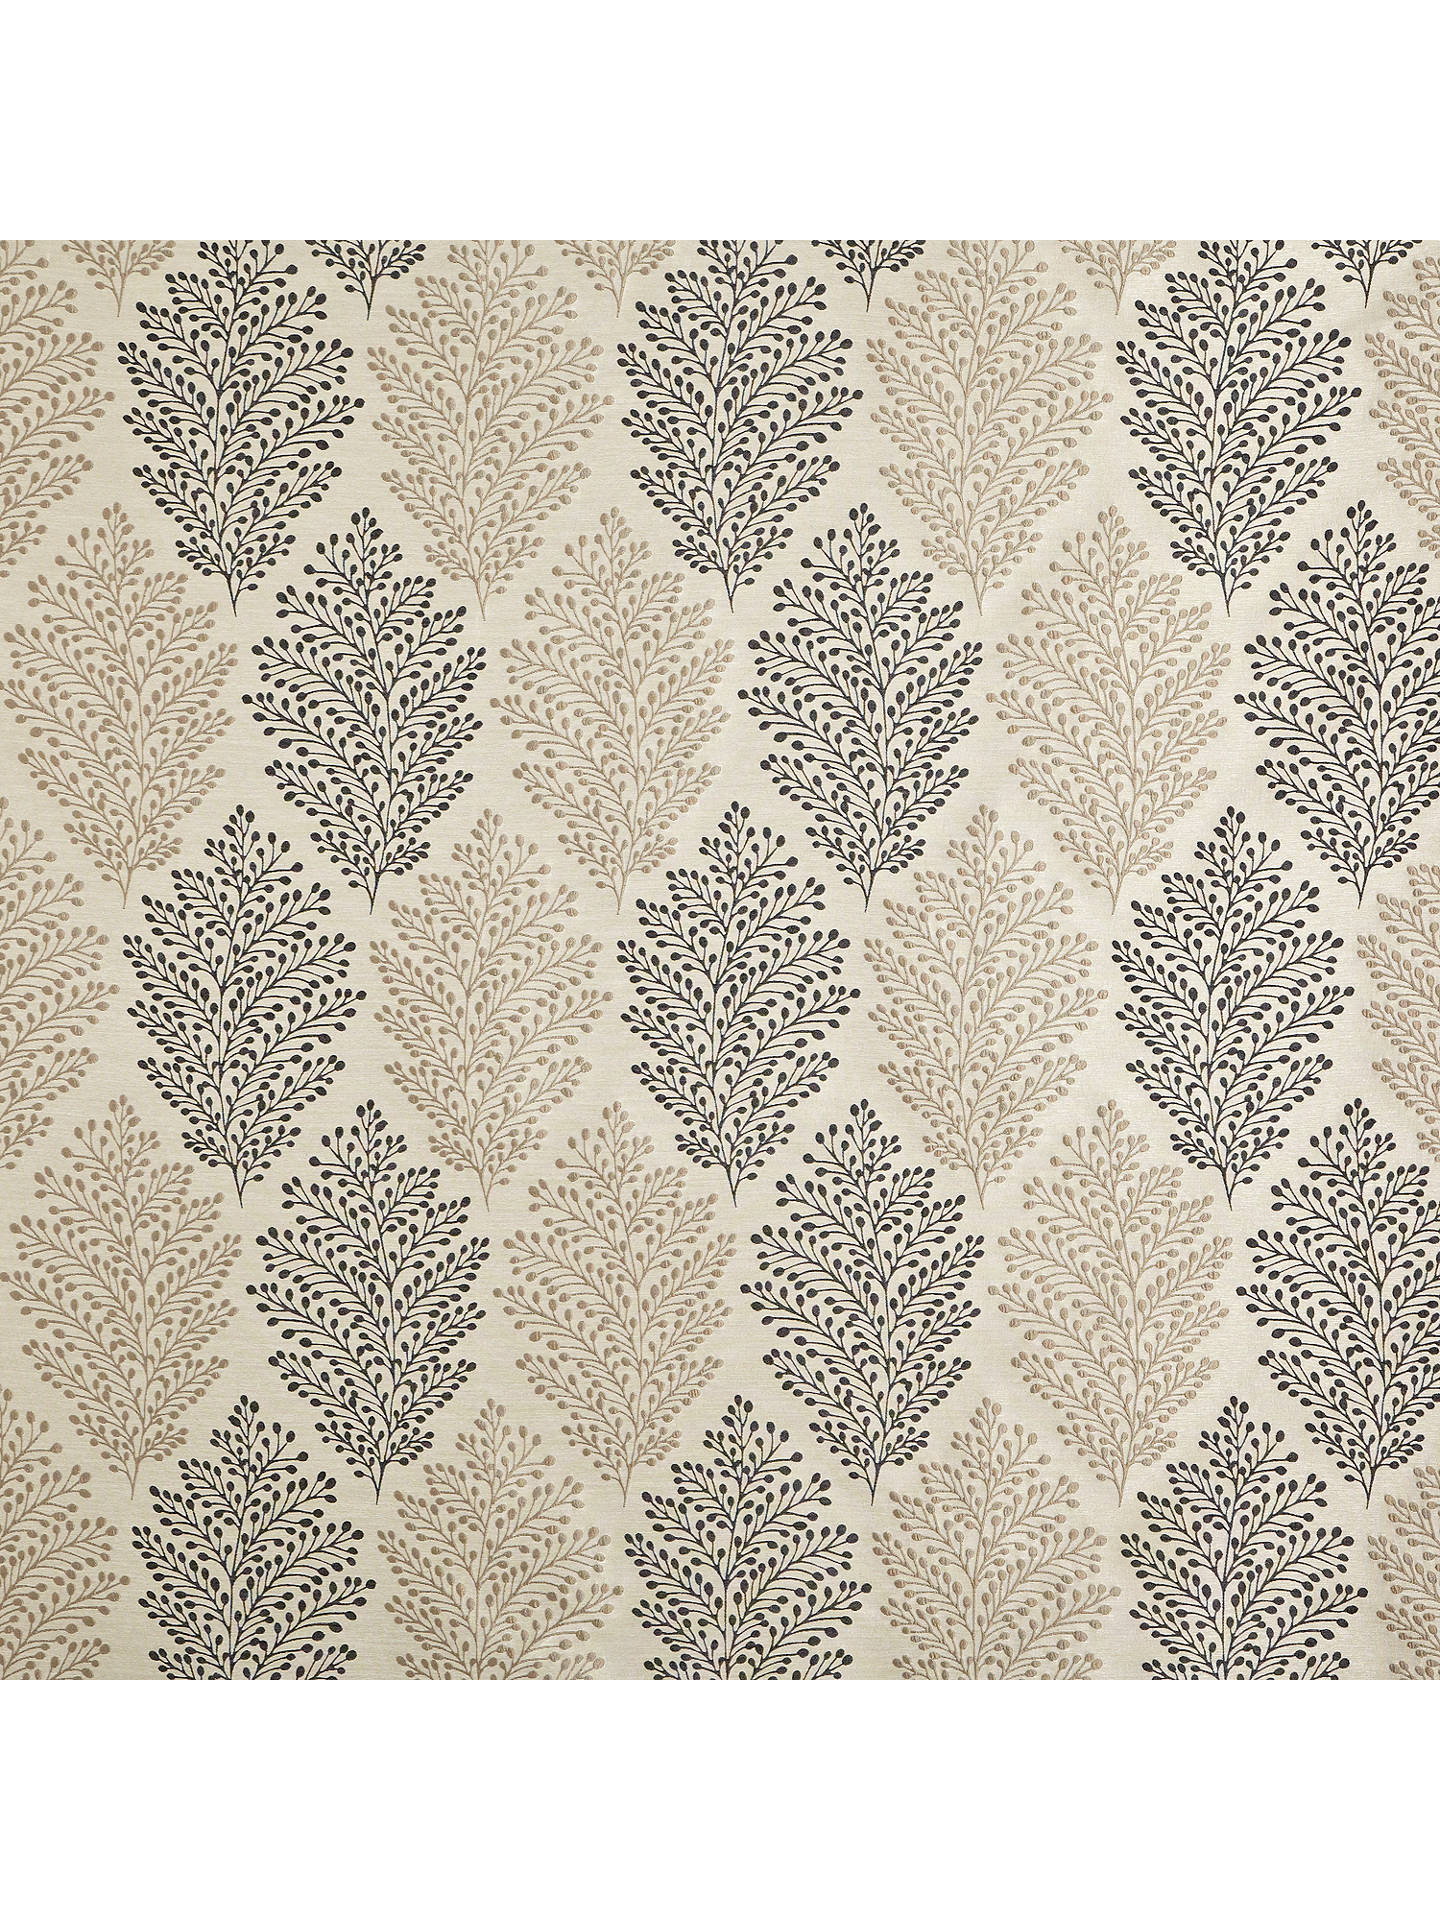 Buy John Lewis & Partners Bracken Leaf Made to Measure Curtains, Charcoal Online at johnlewis.com